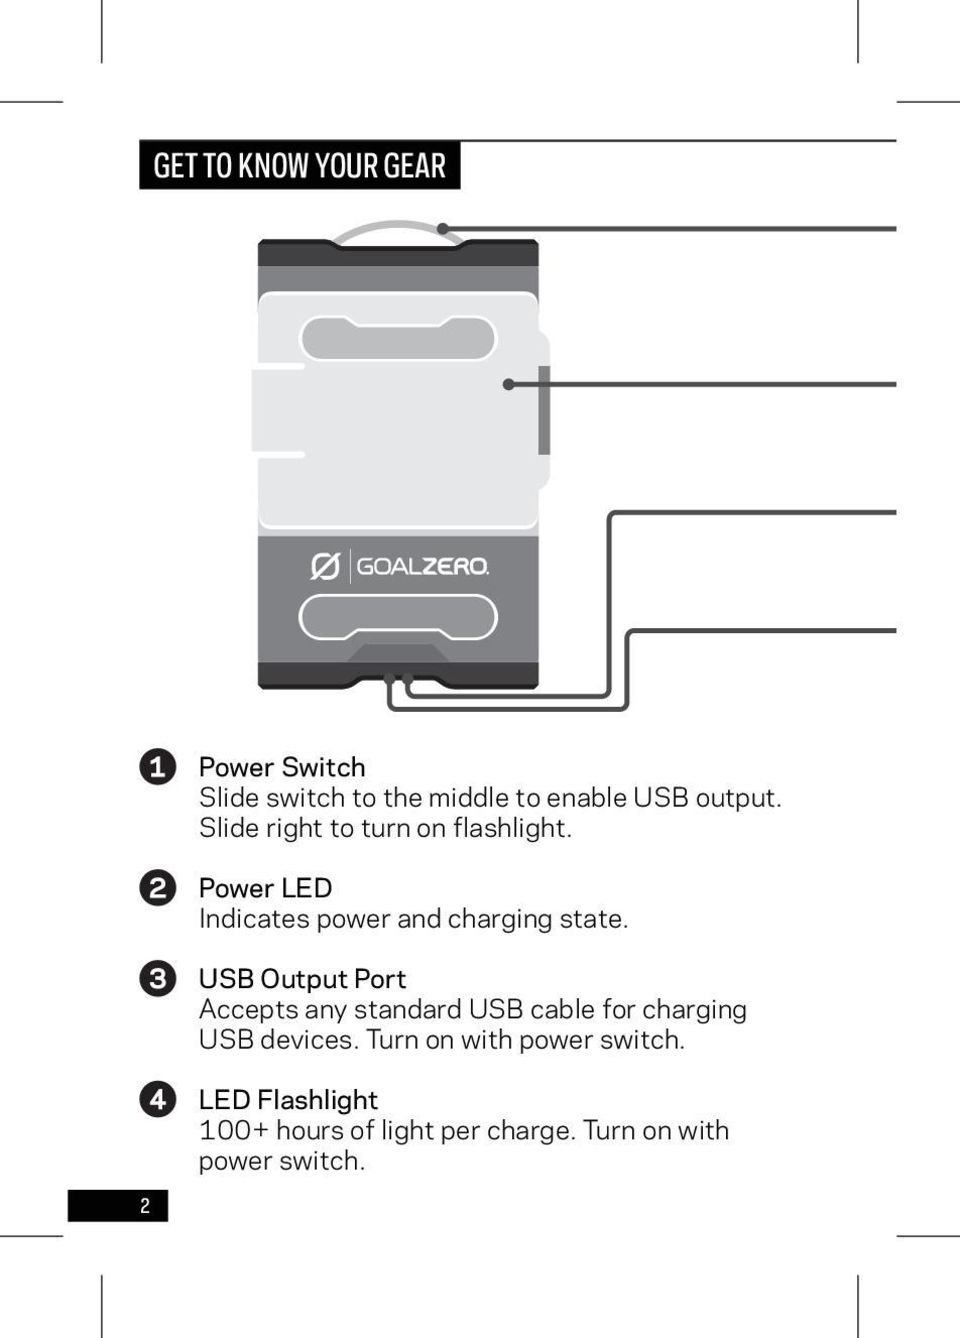 USB Output Port Accepts any standard USB cable for charging USB devices.